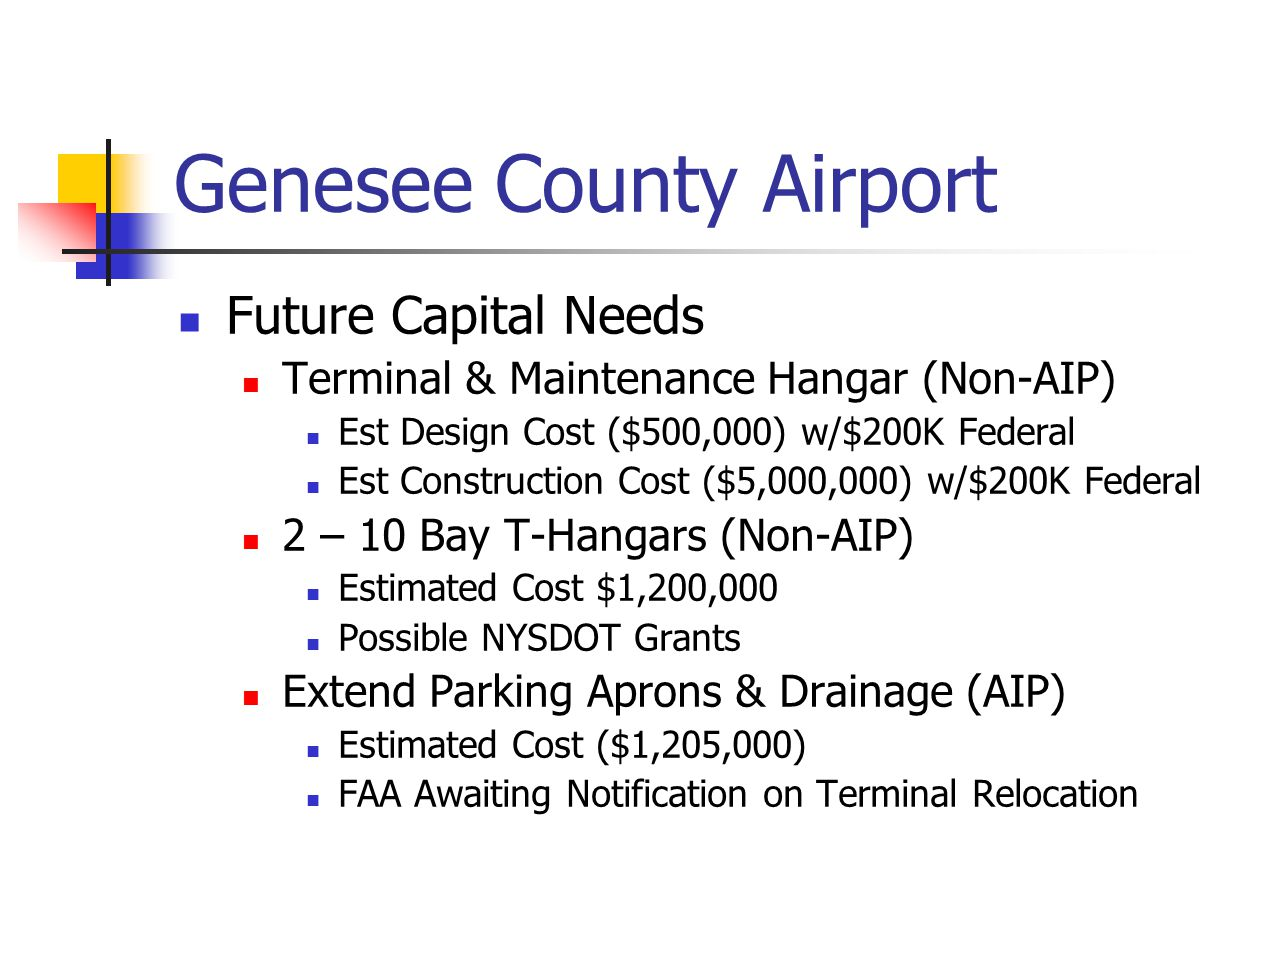 Genesee County Airport Future Capital Needs Terminal & Maintenance Hangar (Non-AIP) Est Design Cost ($500,000) w/$200K Federal Est Construction Cost ($5,000,000) w/$200K Federal 2 – 10 Bay T-Hangars (Non-AIP) Estimated Cost $1,200,000 Possible NYSDOT Grants Extend Parking Aprons & Drainage (AIP) Estimated Cost ($1,205,000) FAA Awaiting Notification on Terminal Relocation